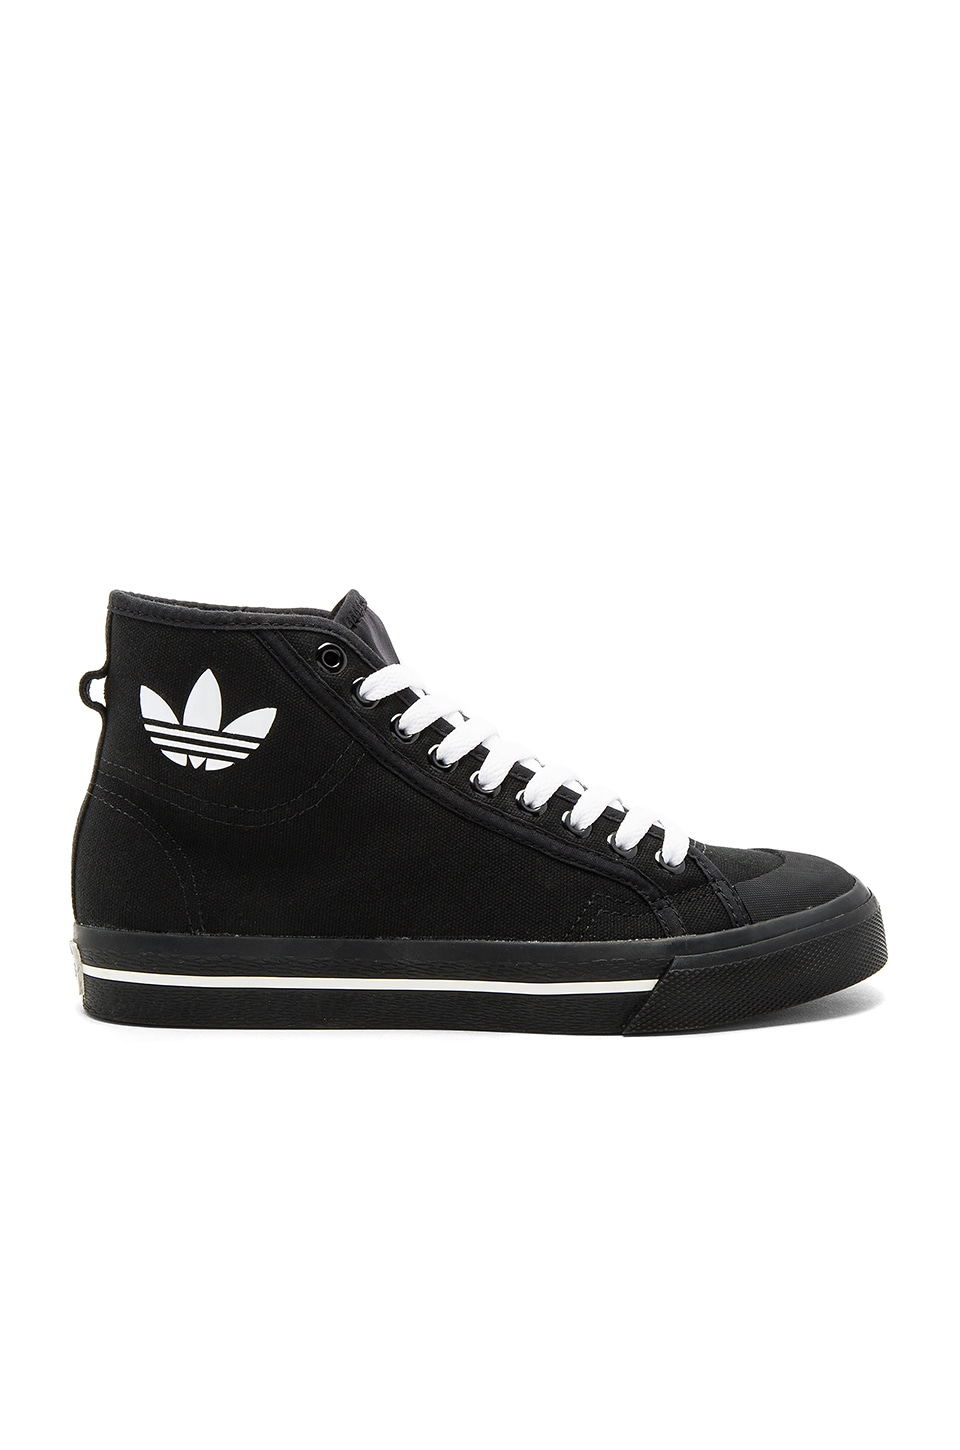 adidas by Raf Simons RS Matrix Spirit High Top Sneaker in Black & White